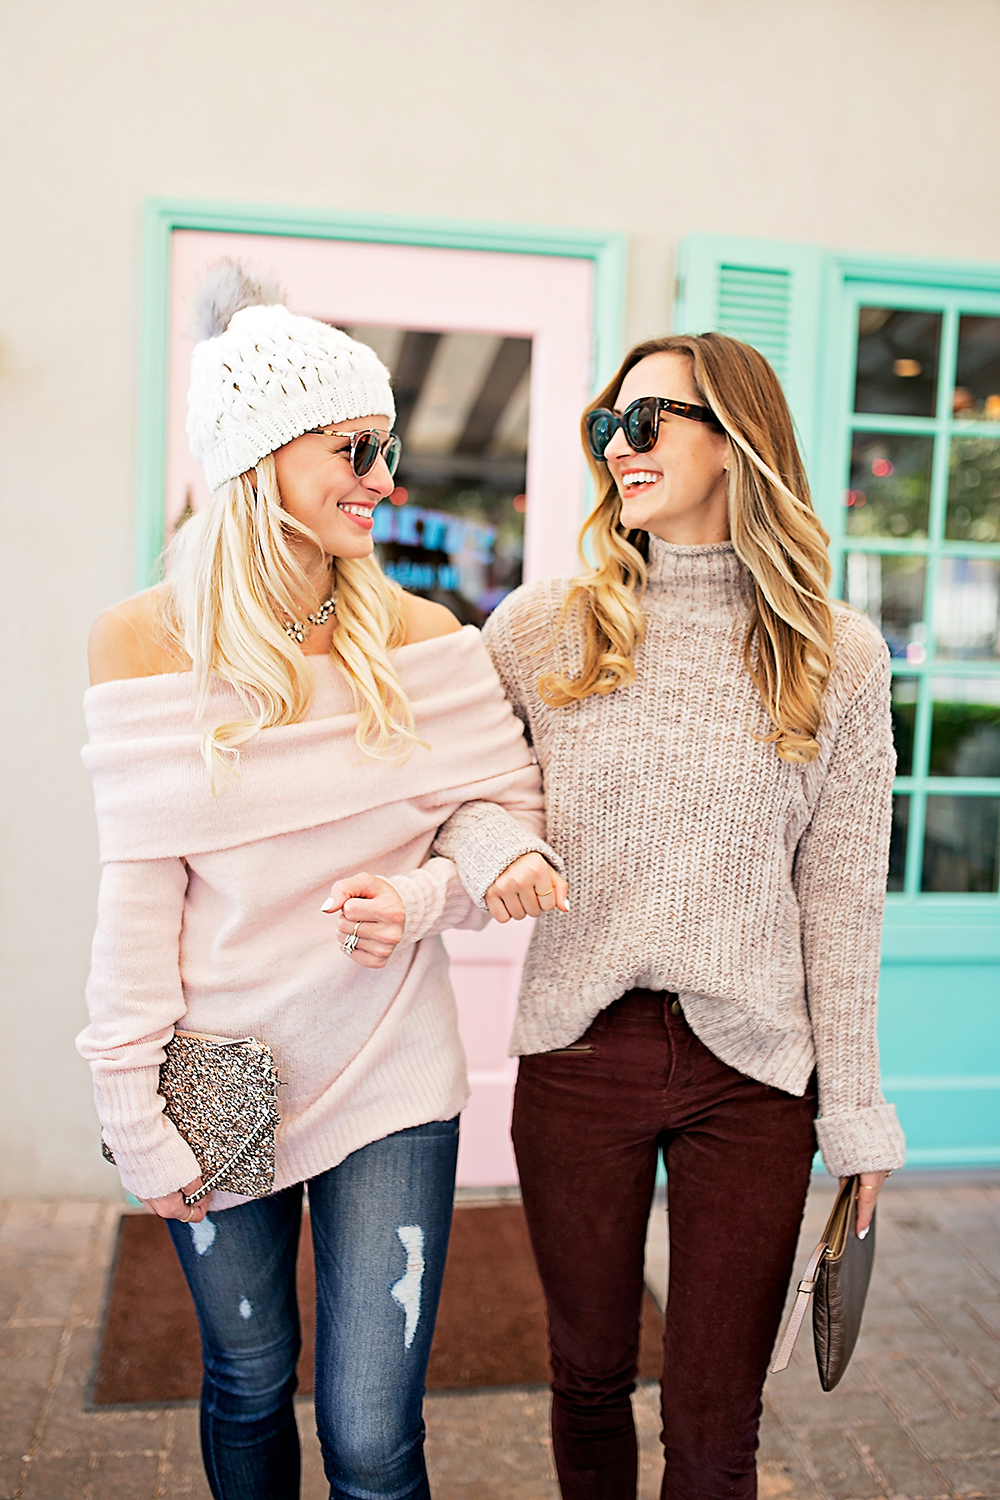 livvyland-blog-olivia-watson-express-cyber-monday-sweater-sale-lauren-vandiver-vandi-fair-cozy-outfit-friend-date-elizabeth-street-cafe-4